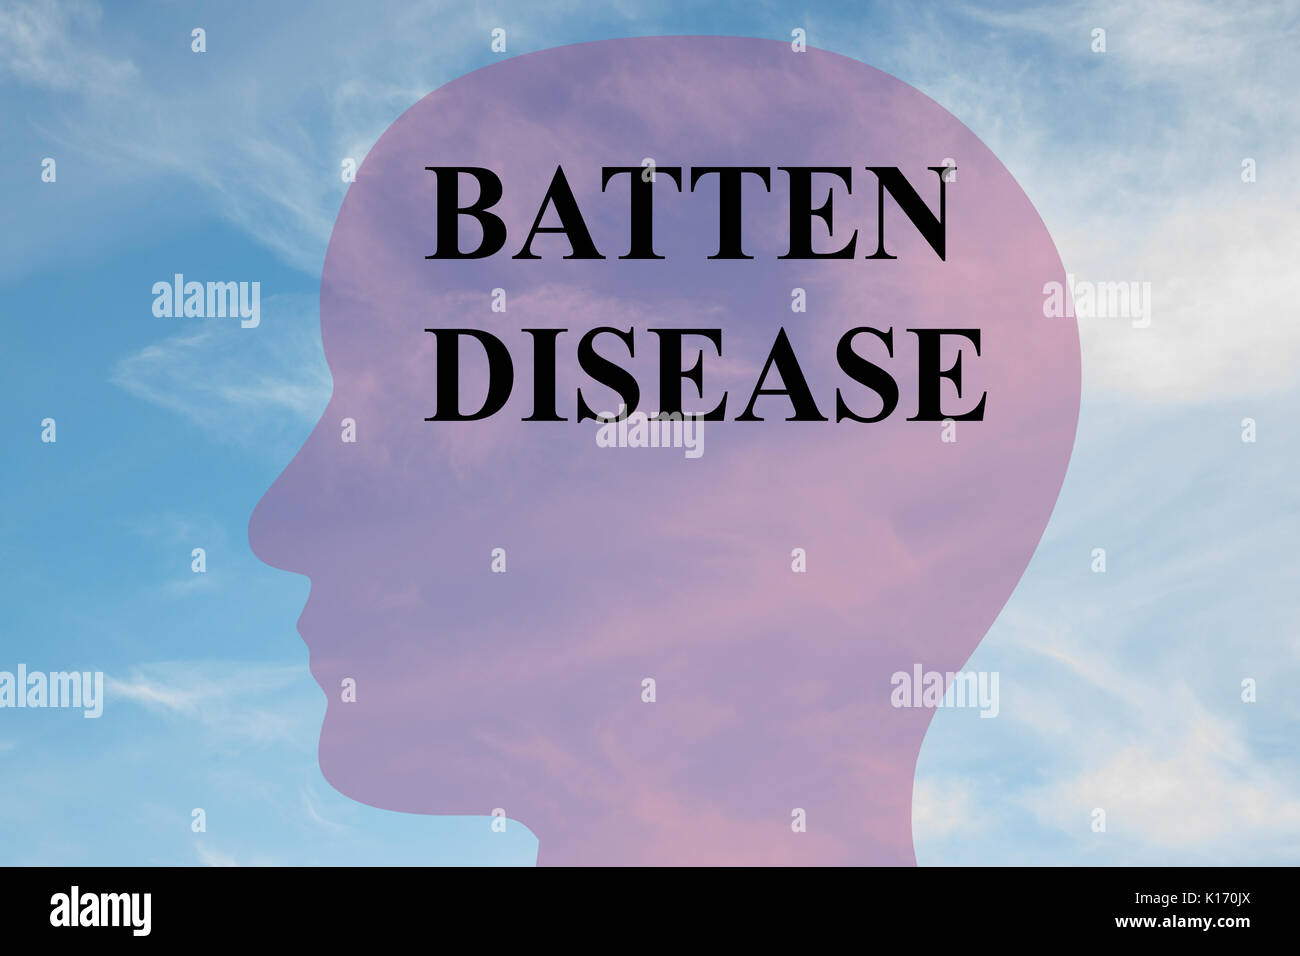 Render illustration of 'BATTEN DISEASE' title on head silhouette, with cloudy sky as a background. - Stock Image